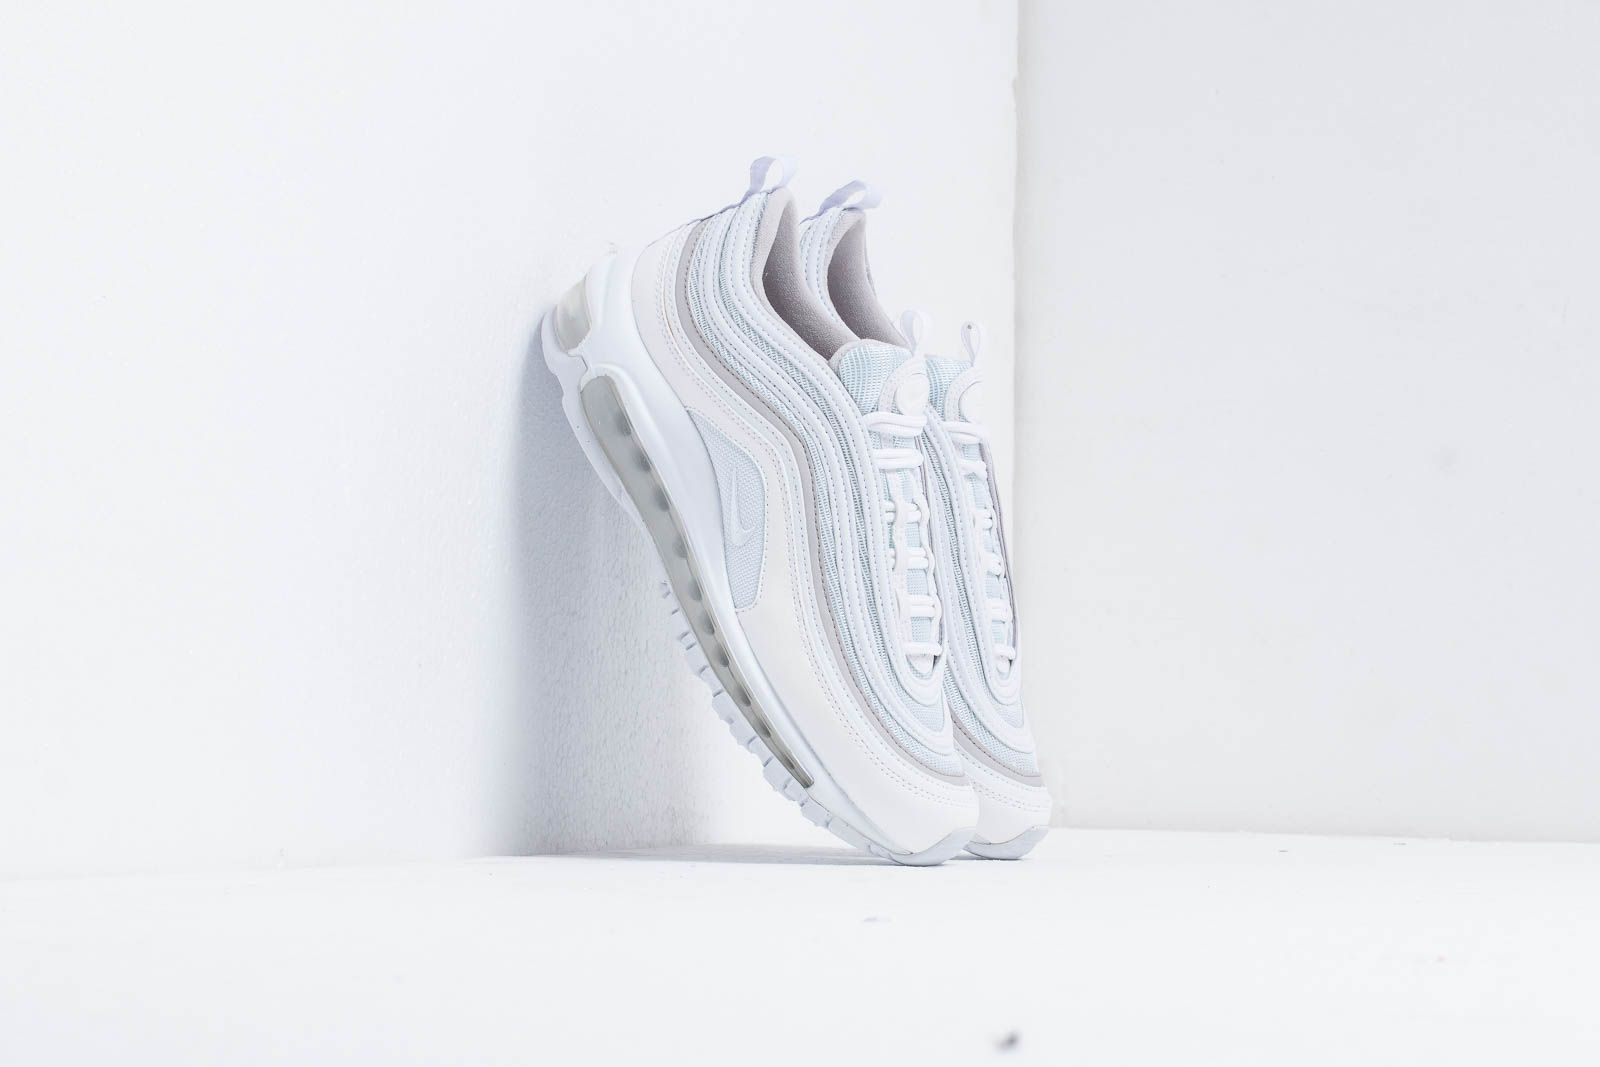 df341d2df3 Nike Air Max 97 (GS) White/ White-Vast Grey | Footshop